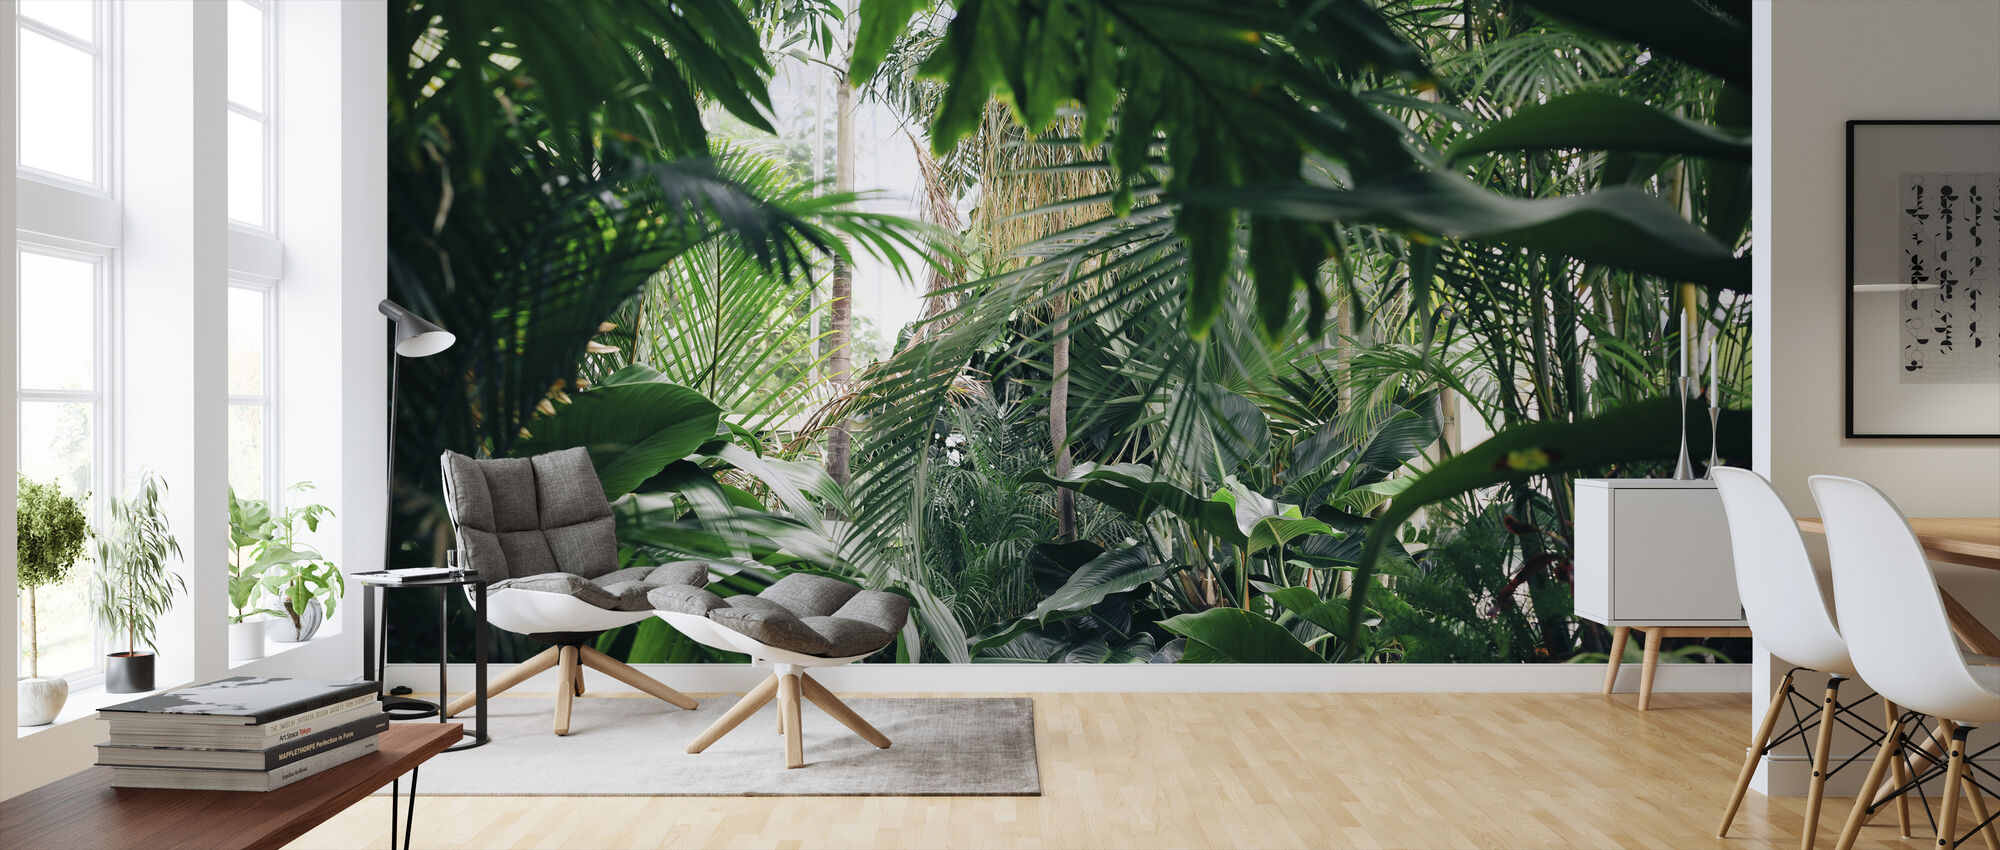 Jungle Plants - Wallpaper - Living Room